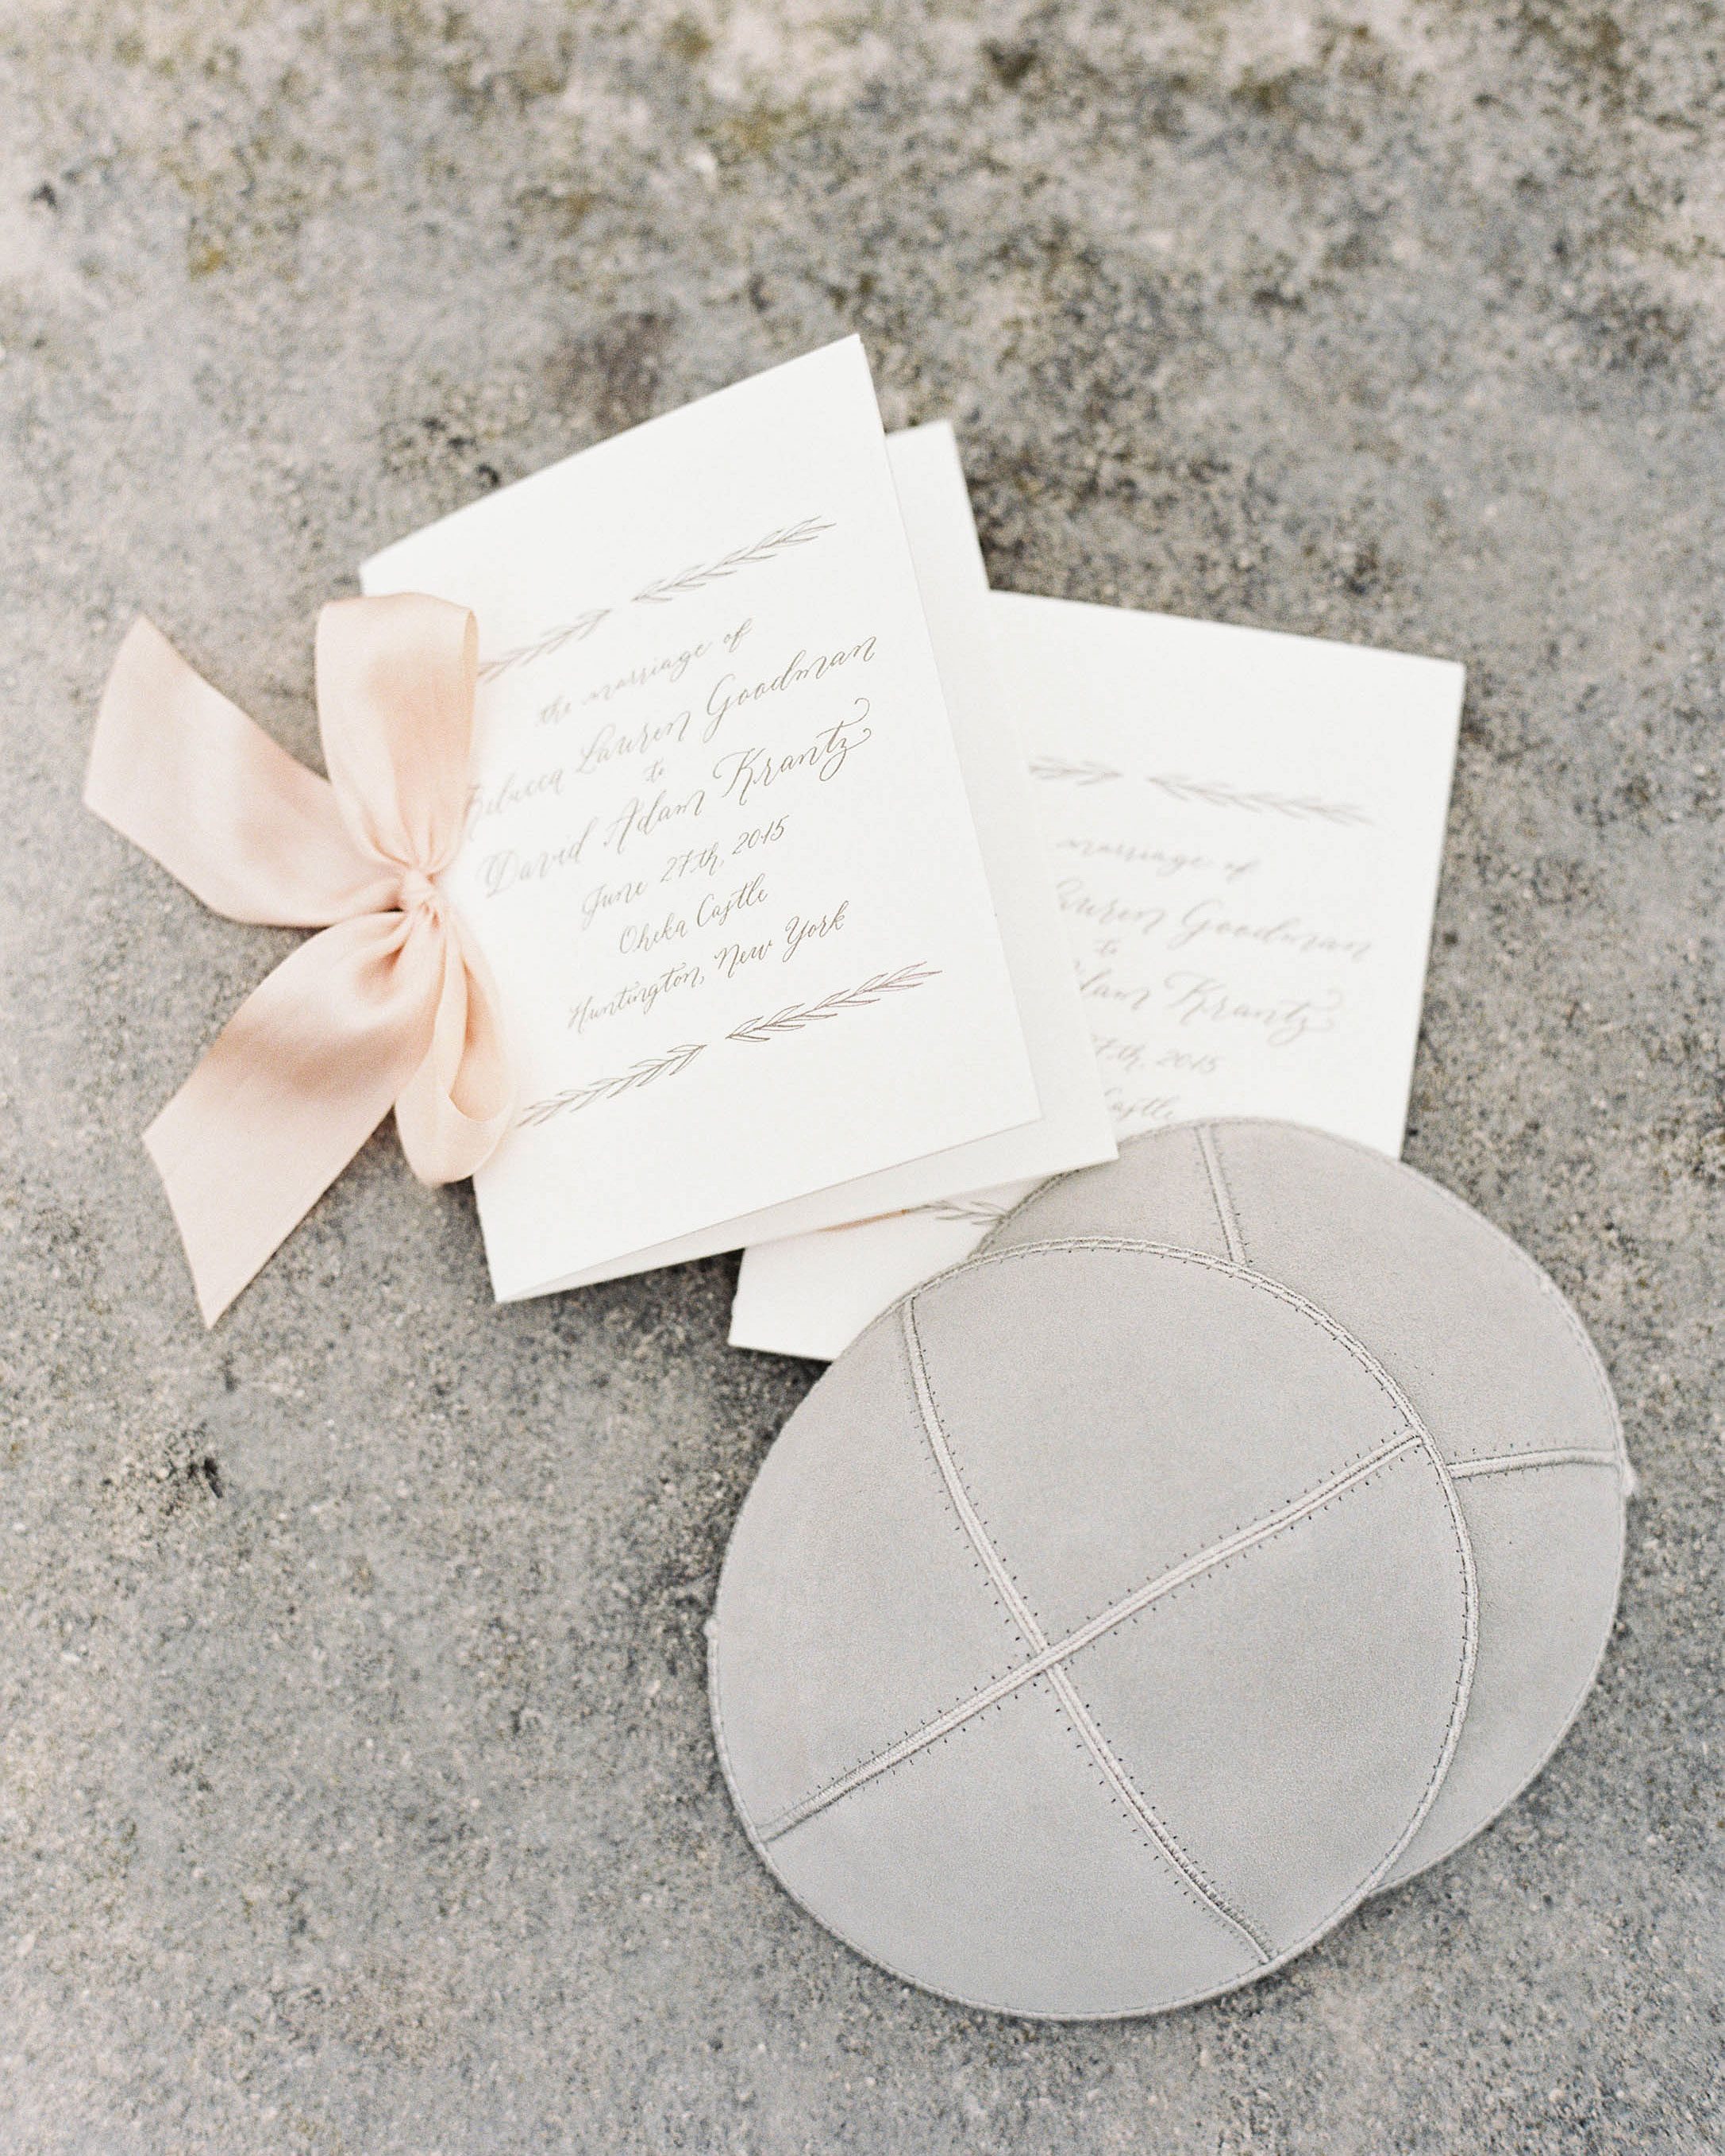 rebecca-david-wedding-new-york-program-yarmulkes-6-d112241.jpg